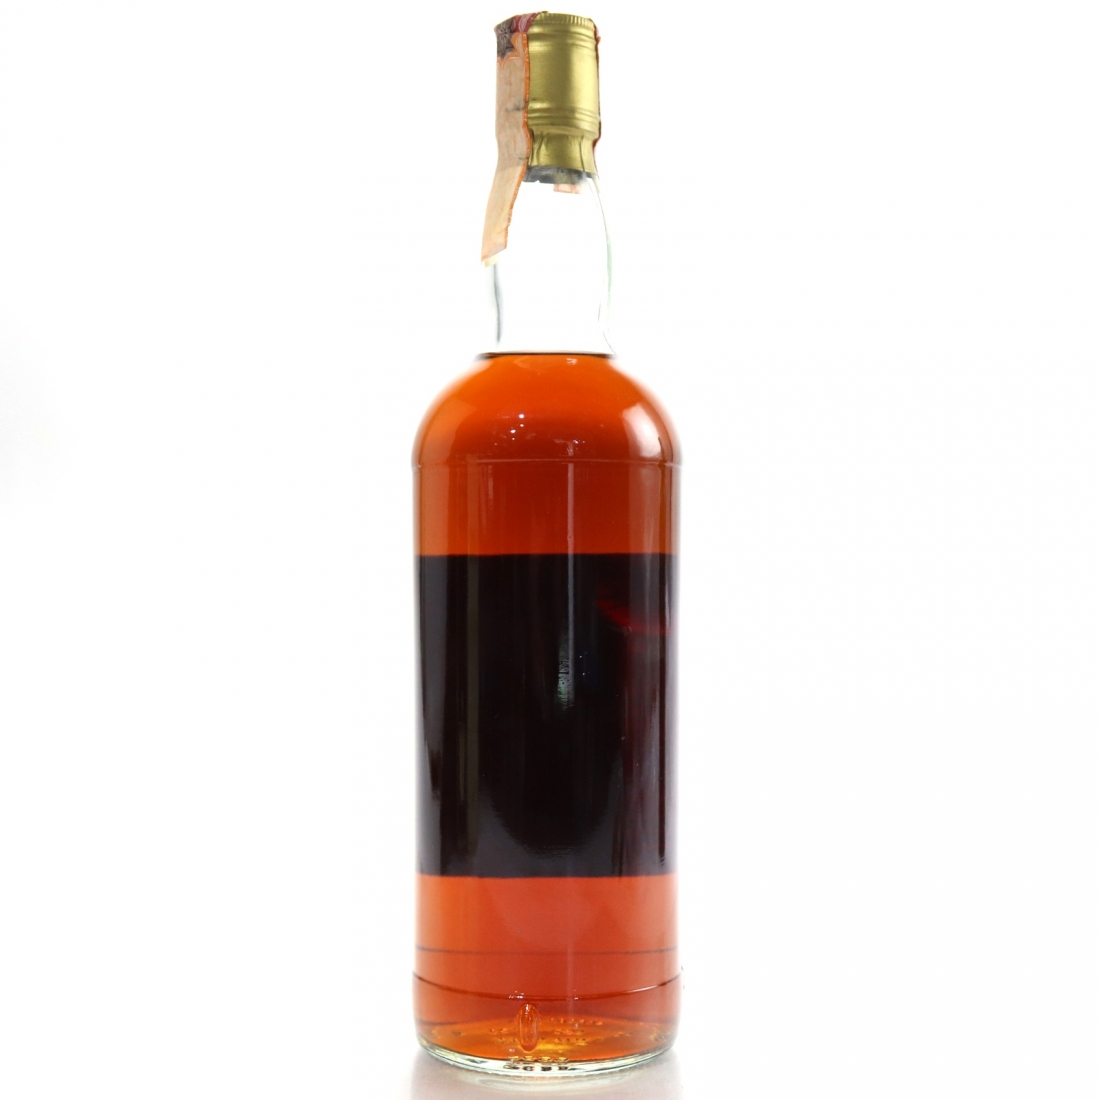 Macallan 40 Year Old Gordon and MacPhail 1970s / Co. Pinerolo Import